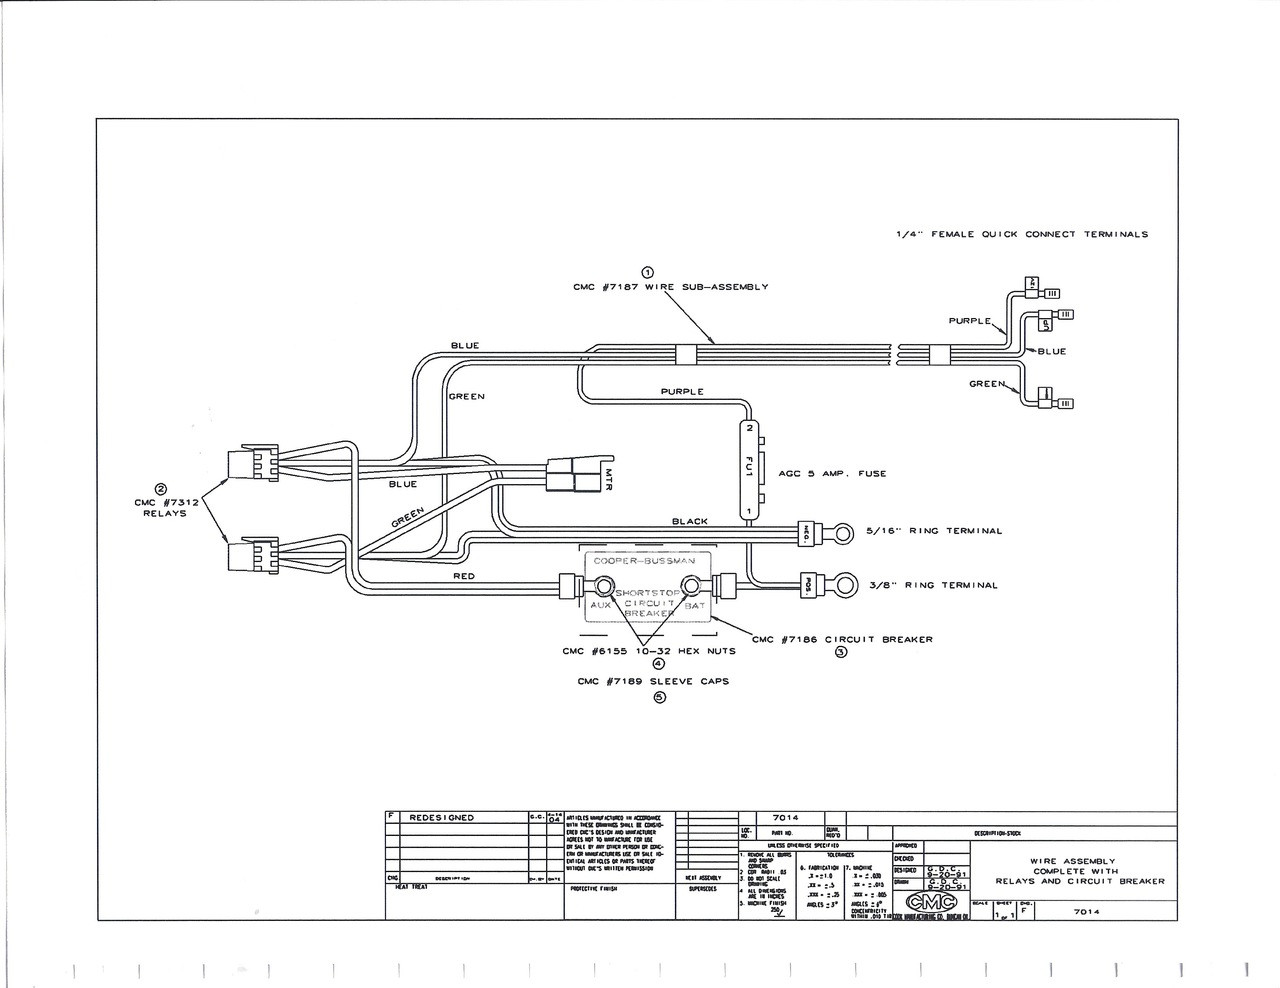 hight resolution of wire assembly cmc 7014g cmc tilt and trim wiring harness cmc wiring harness